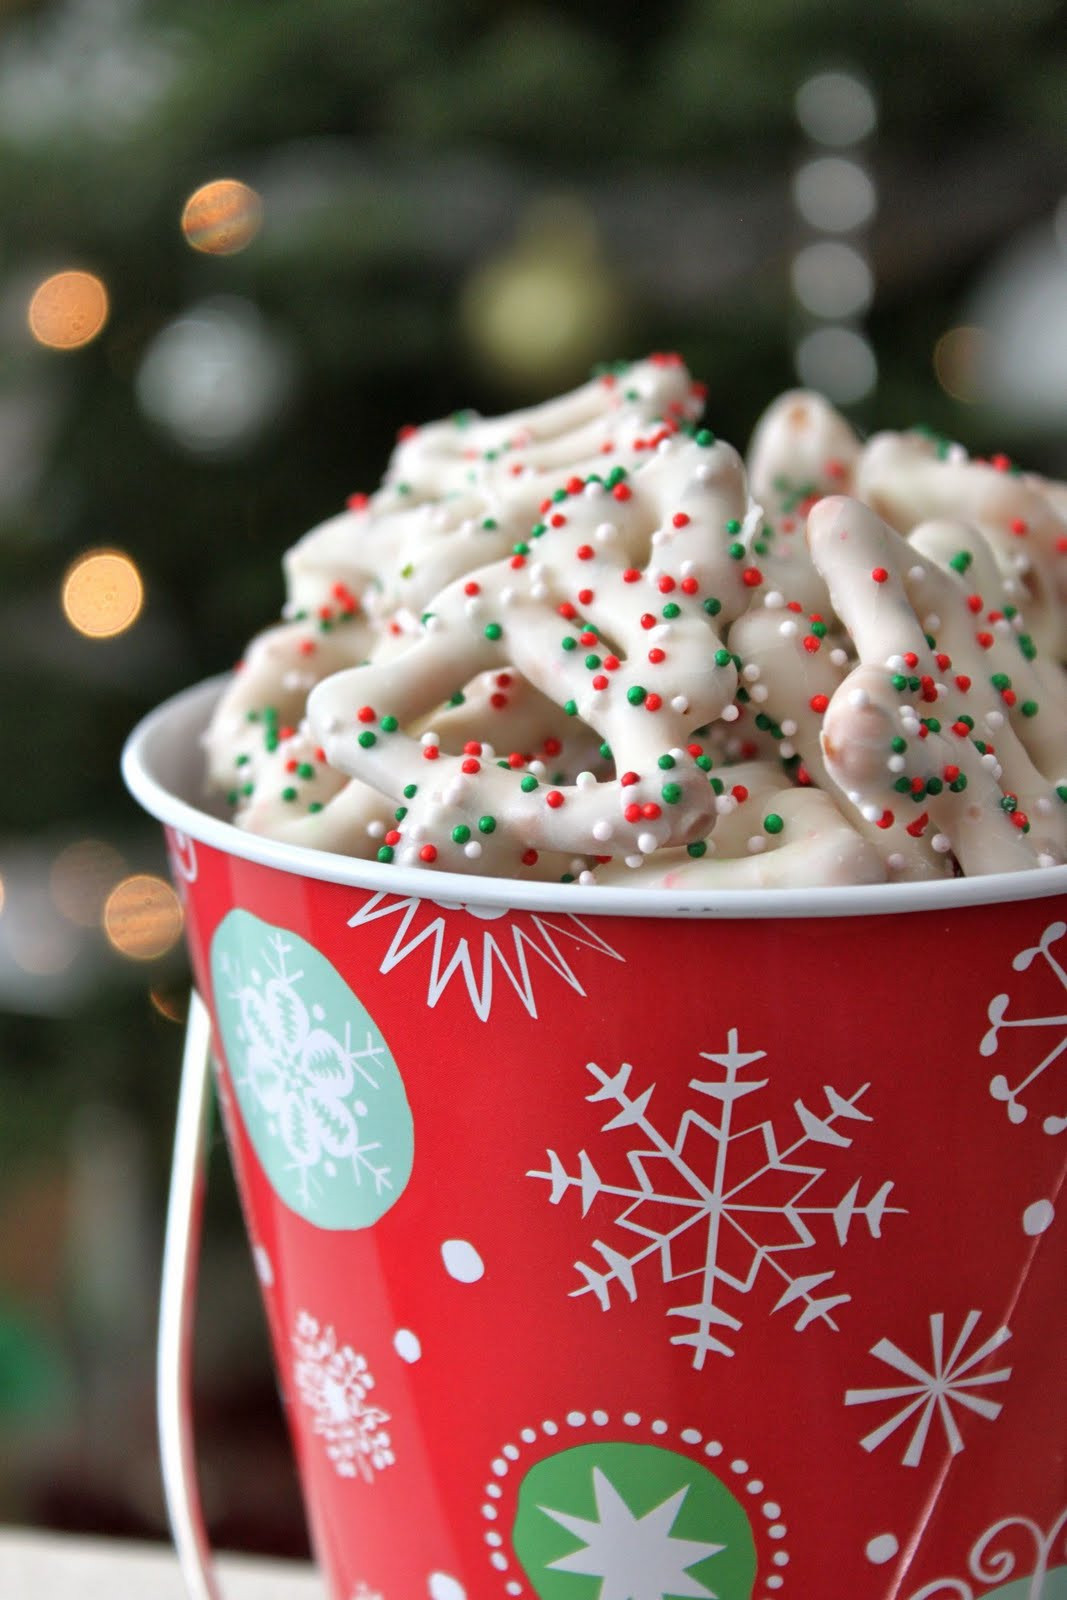 White Chocolate Candy Recipes For Christmas  Baked Perfection White Chocolate Christmas Pretzels